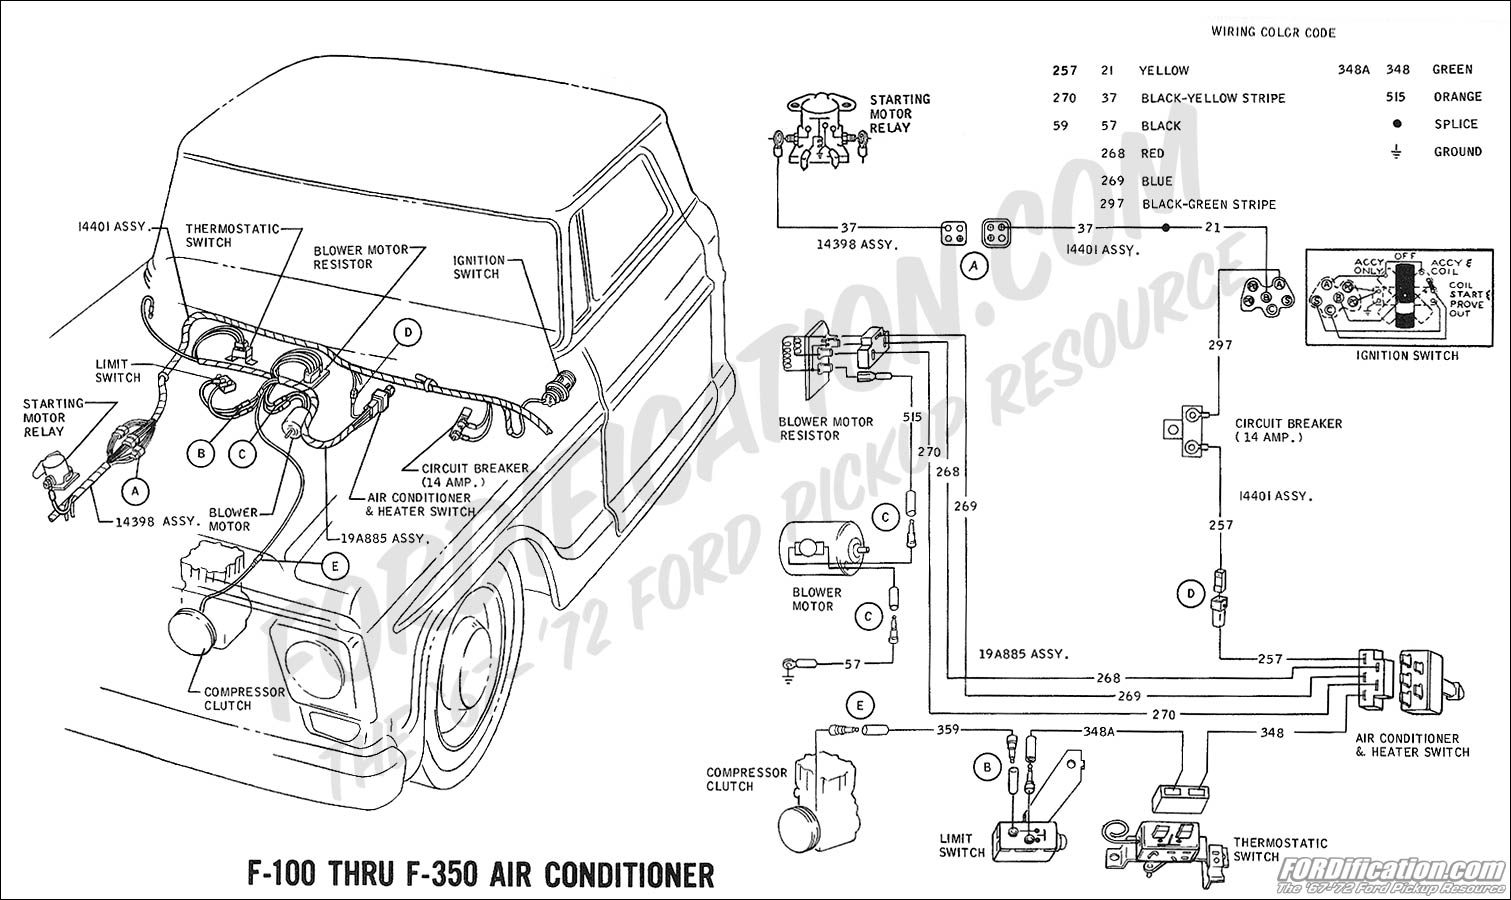 D A B B besides Bronco additionally Fuse Block Ck further Brake Light Wiring Diagram likewise Chevy Silverado Wiring Diagram Of Chevy Silverado Headlight Wiring Diagram. on 1973 chevy truck under hood wiring diagram